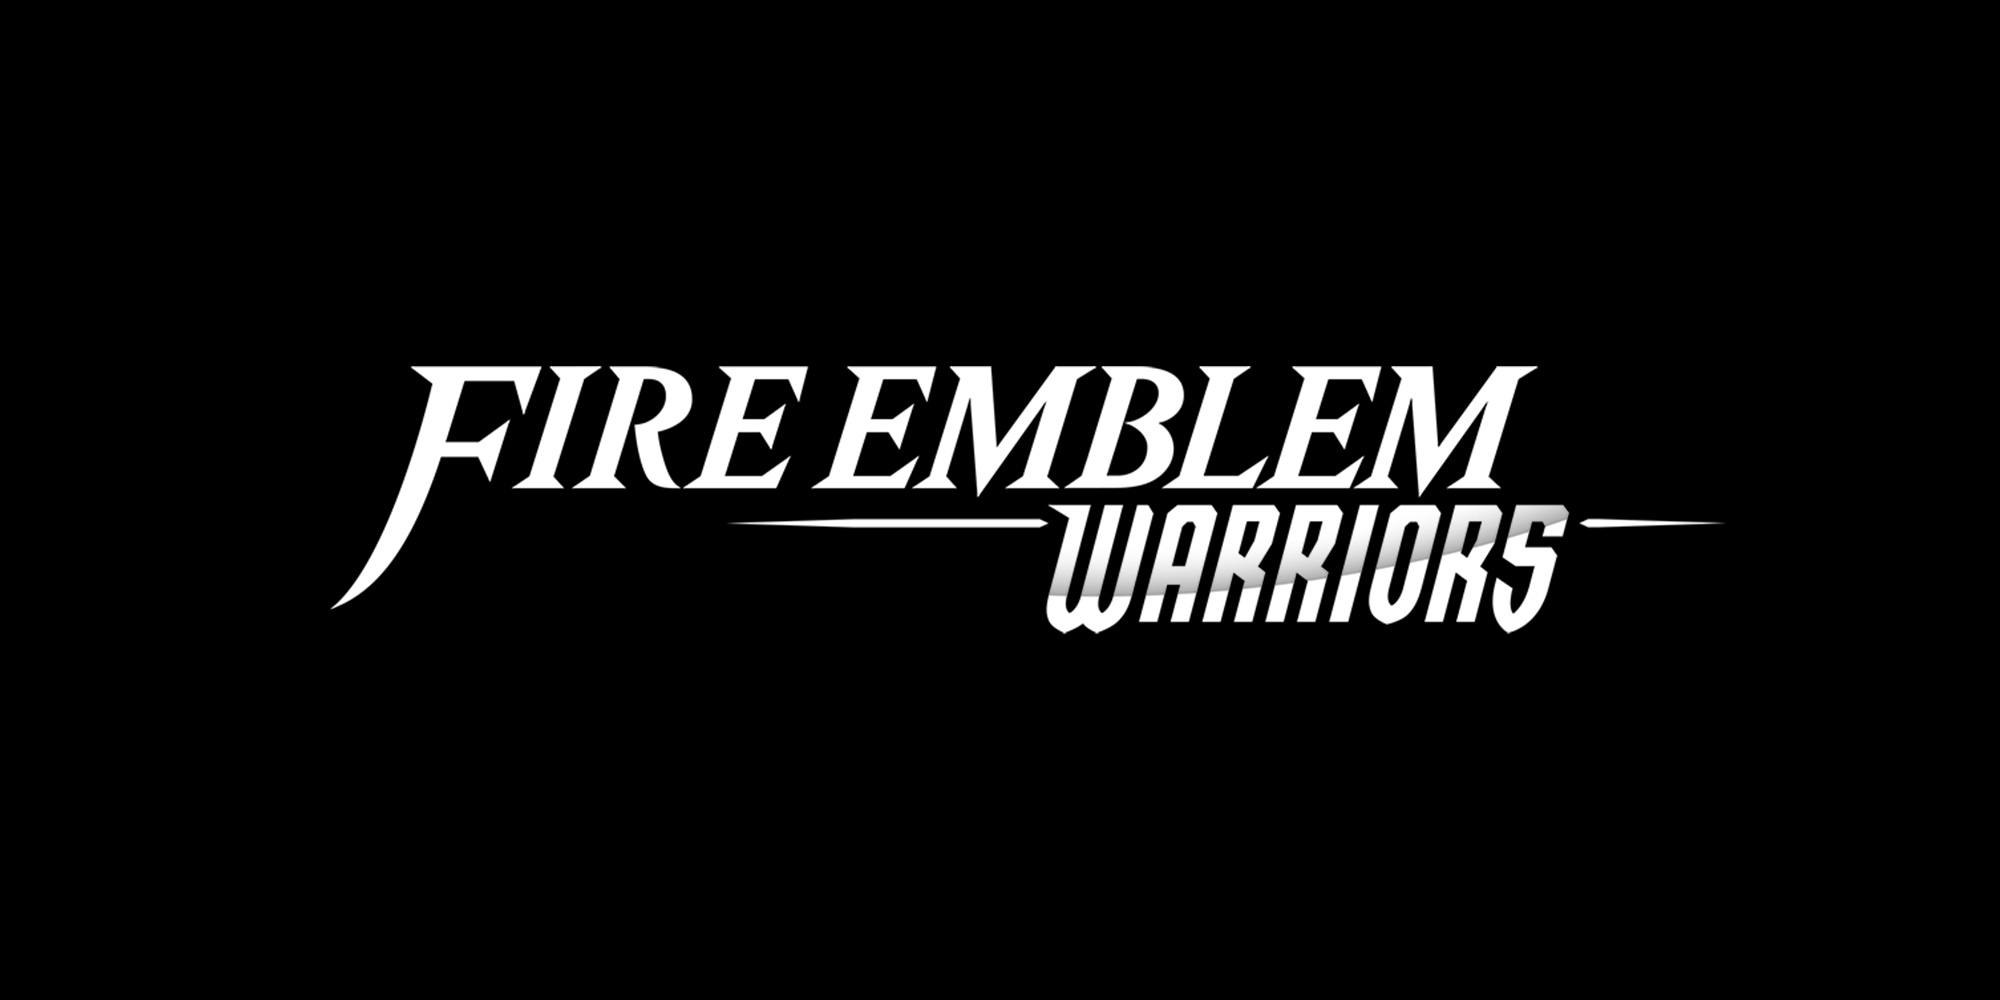 Here's Some Fire Emblem Warriors New 3DS Footage